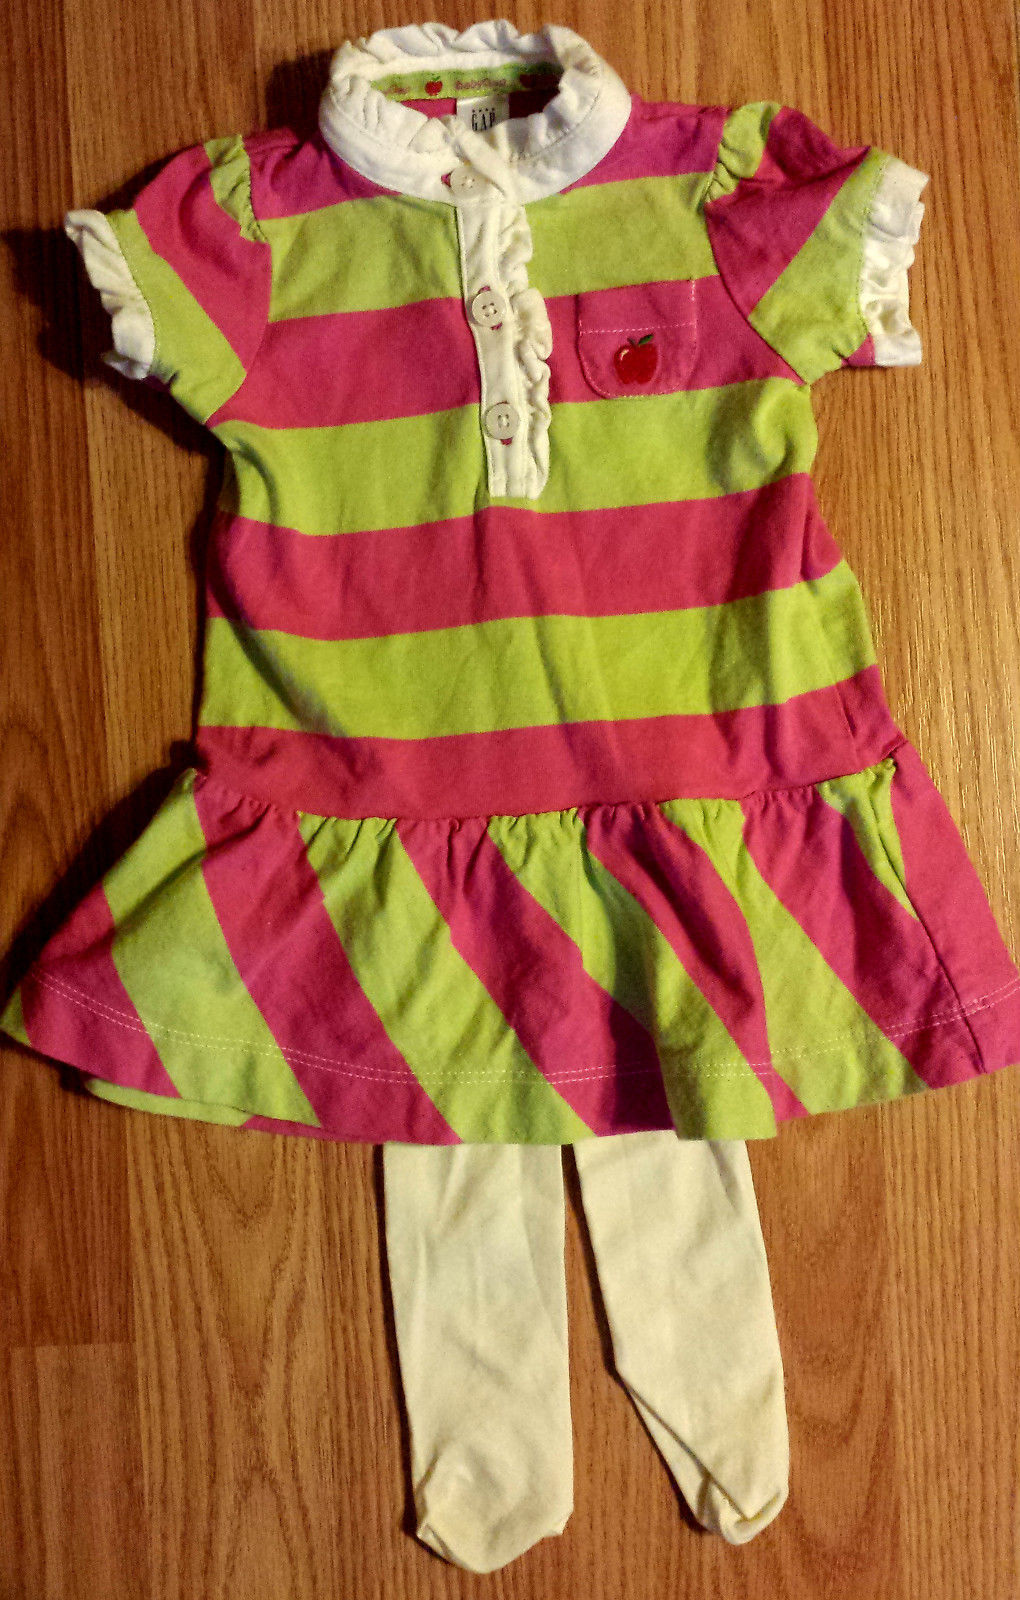 Girl's Size 0-3 M Months Pink/ Green Striped Baby Gap Ruffled Dress + Tights